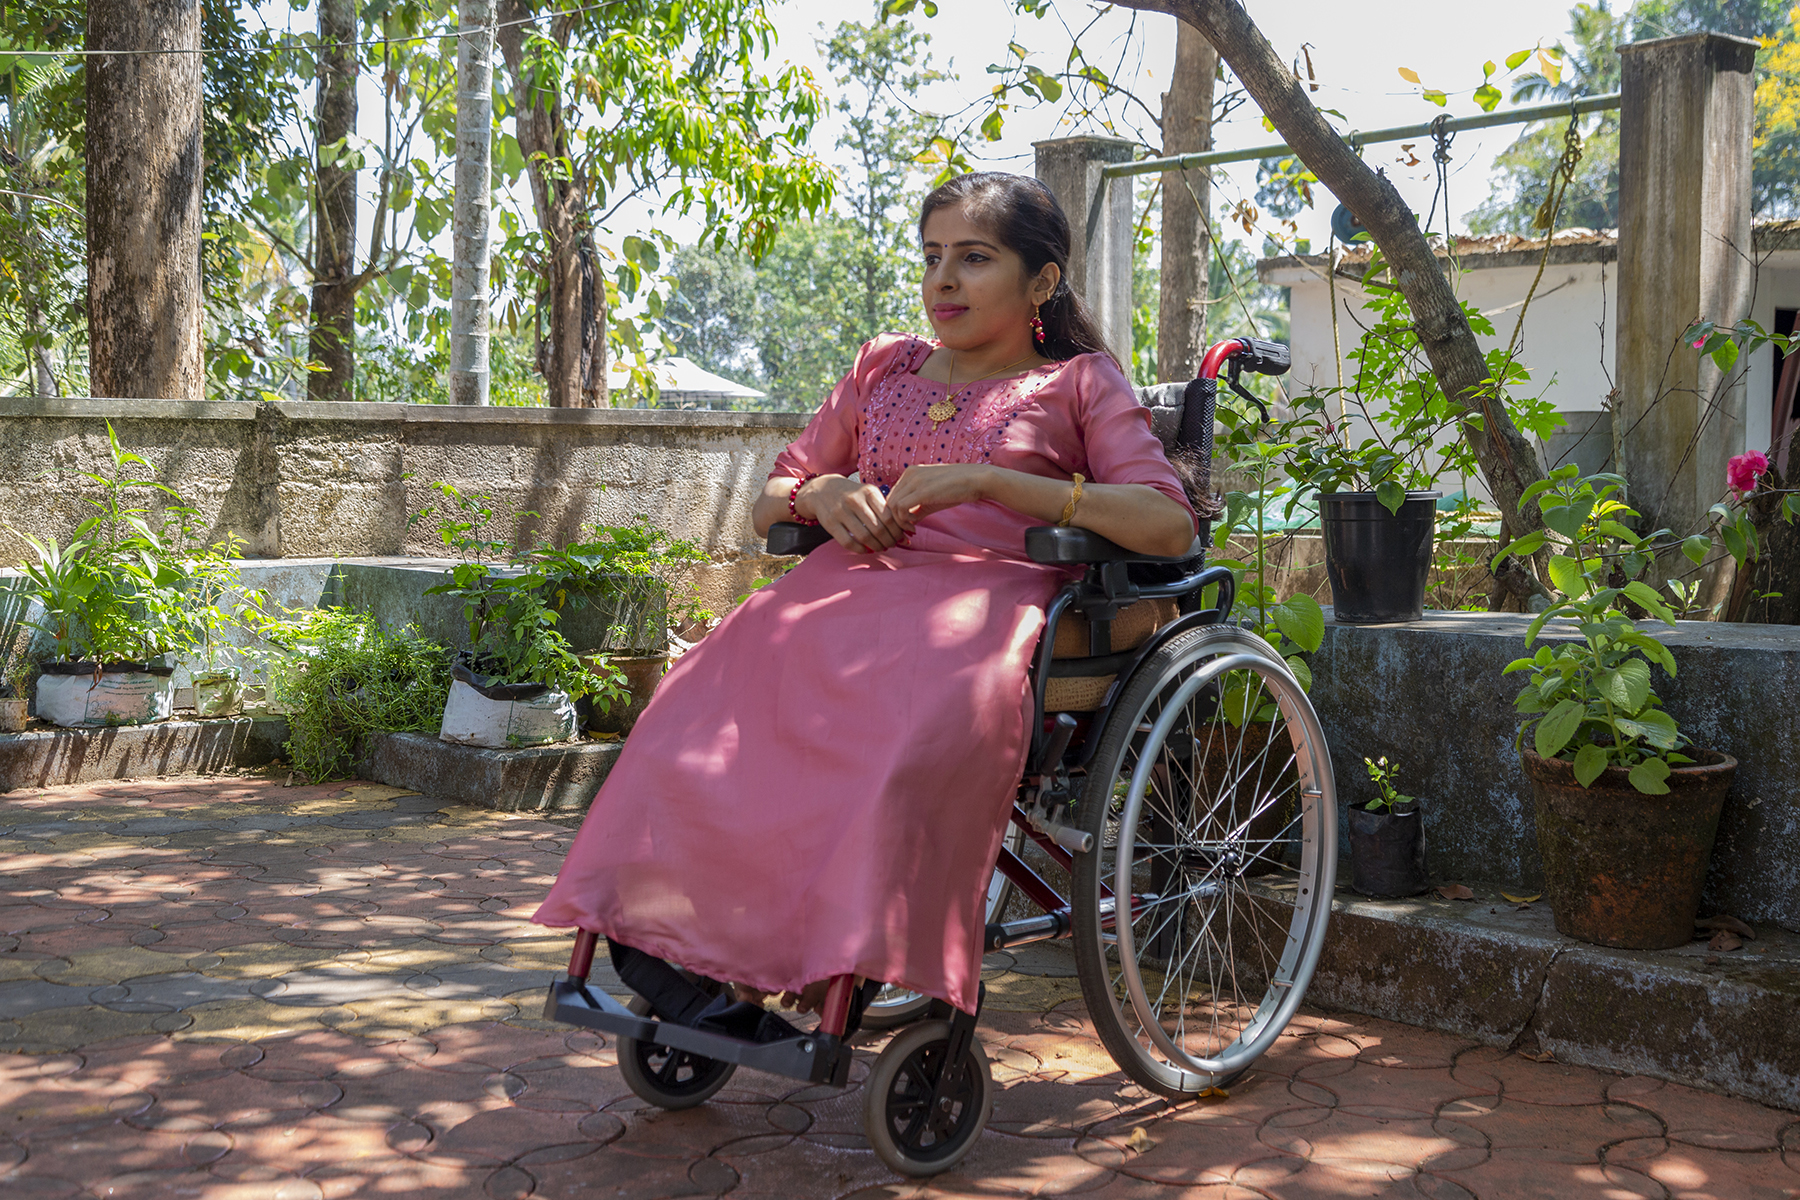 Anju Rani in a peach-coloured kameez with half sleeves and embroidered front panel sits in her wheelchair in the garden. Her long straight hair is tied back with a side parting and she wears dangling earrings and a gold chain with a circular gold pendant. The ground is paved with tiles. Behind her are flower pots on a low parapet wall. Behind the wall, the presence of a well is indicated by two rectangular concrete pillars spanned by an iron rod from which a pulley and coir rope are dangling.